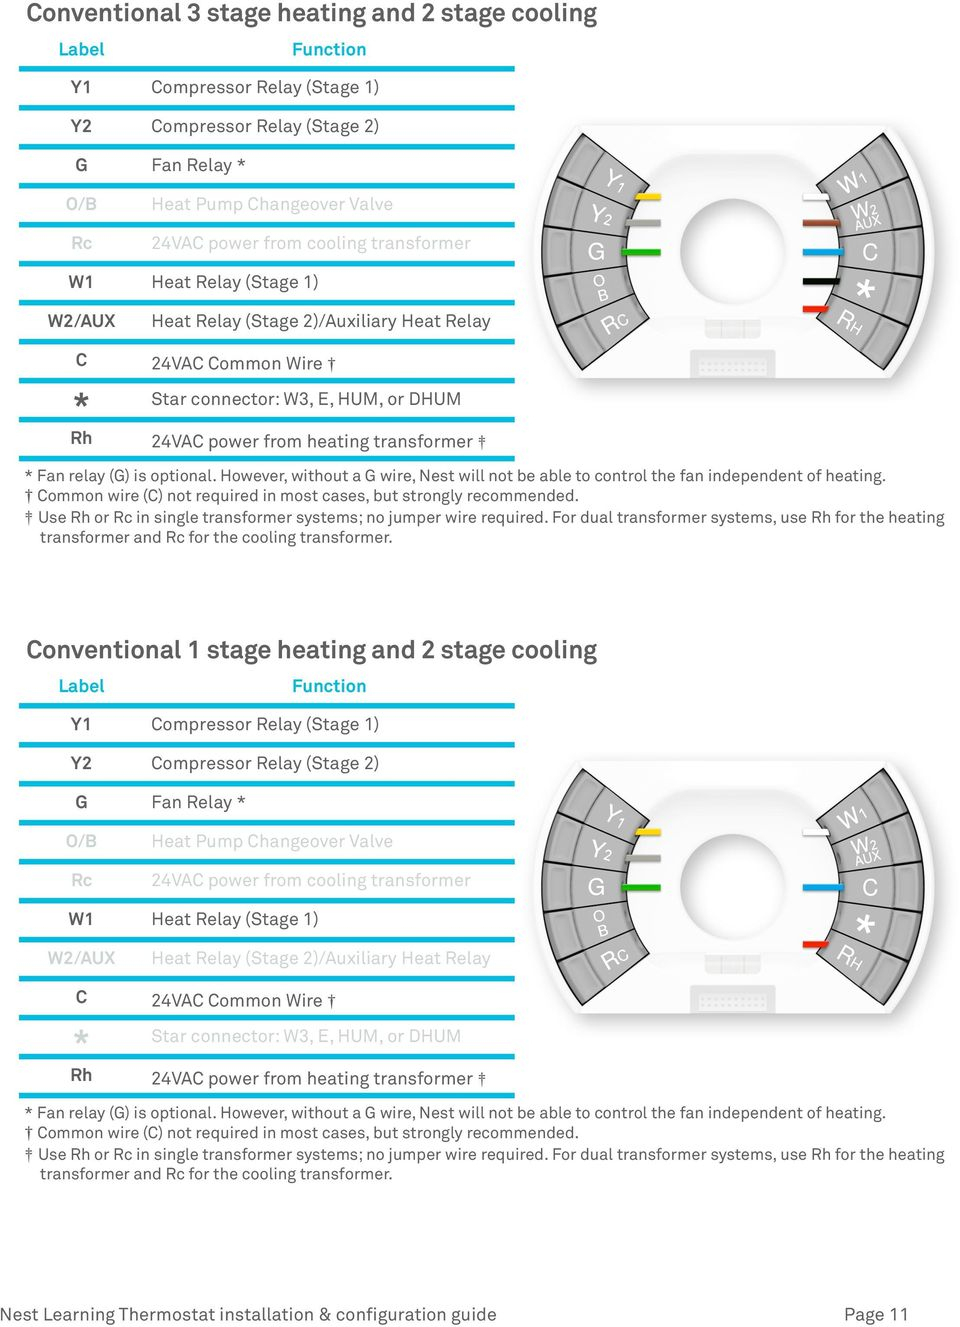 Heat And Cooling Thermostat Wiring Diagrams For Two 3 Nest | Wiring - Nest 3Rd Wiring Diagram